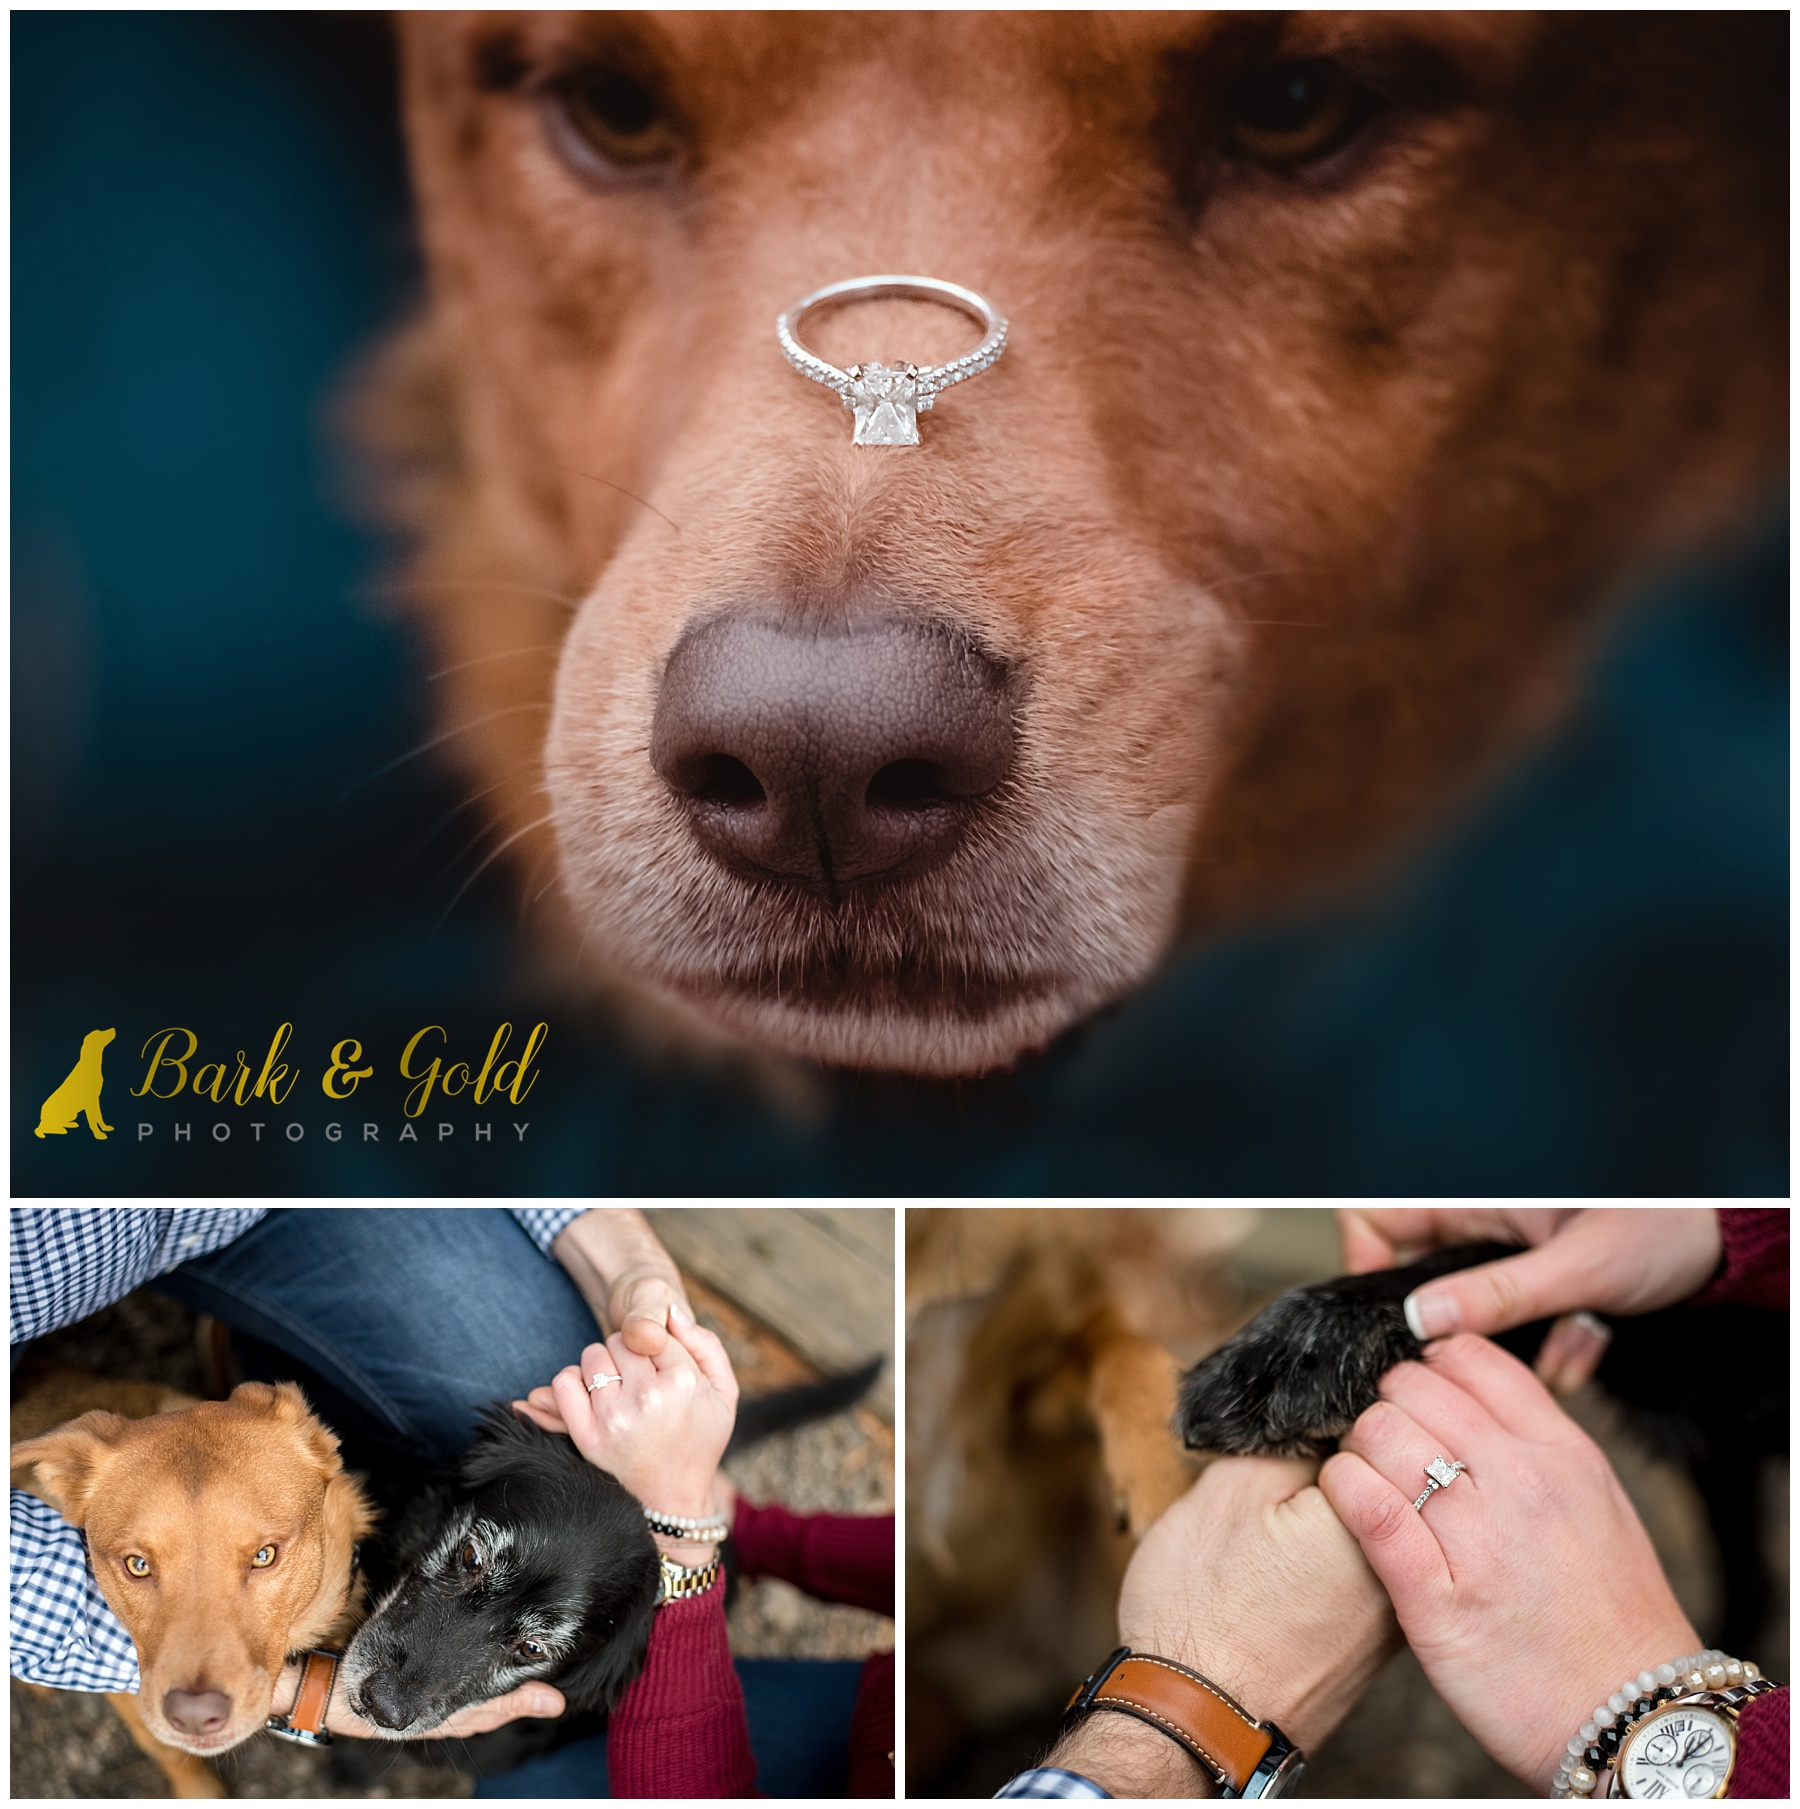 rescue dog with engagement ring on her nose